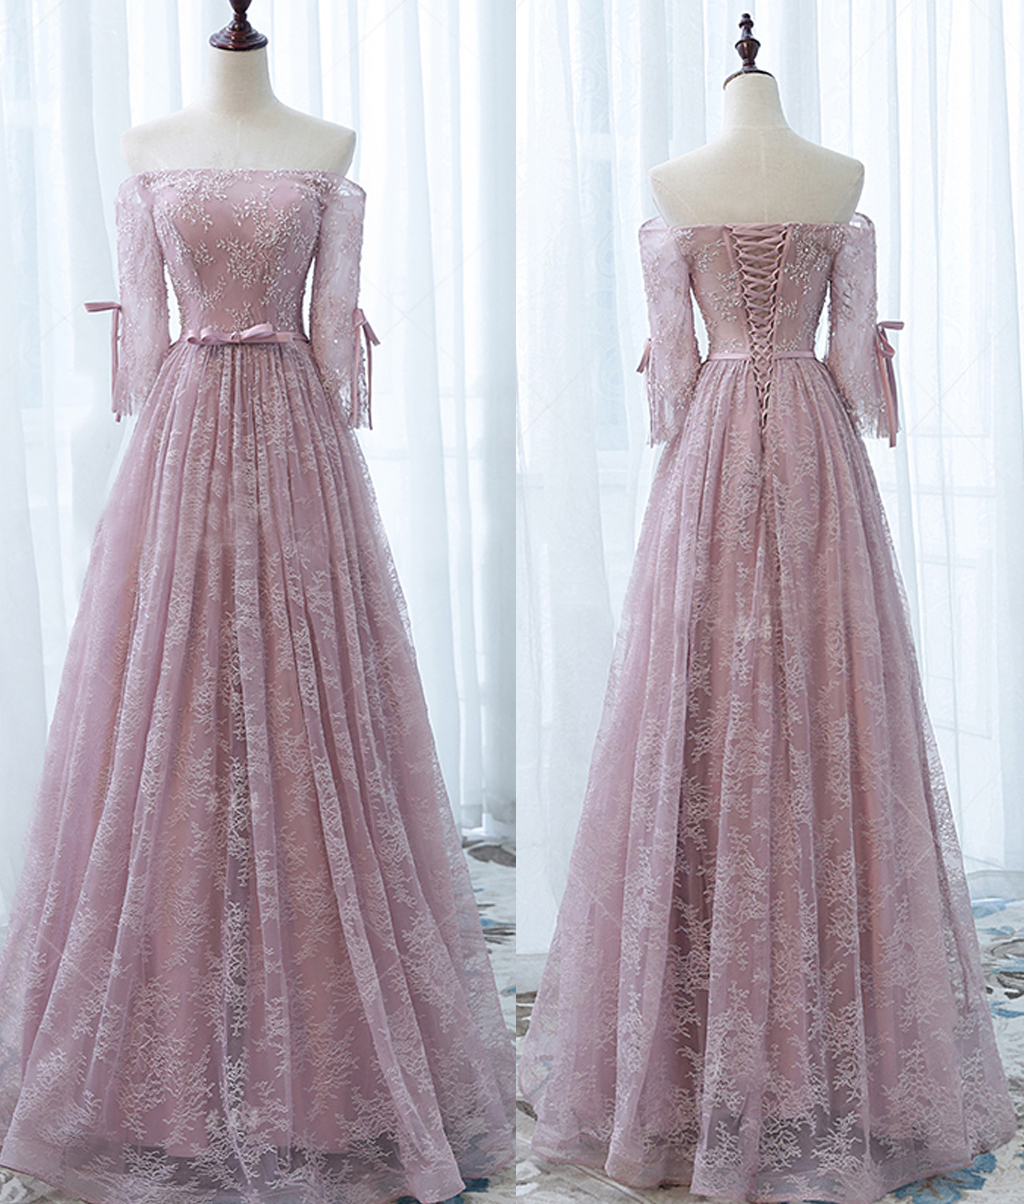 Princess Light Pink Lace Wedding Dress With Off The: Long Prom Dress,Off Shoulder Prom Dress, Vintage Princess